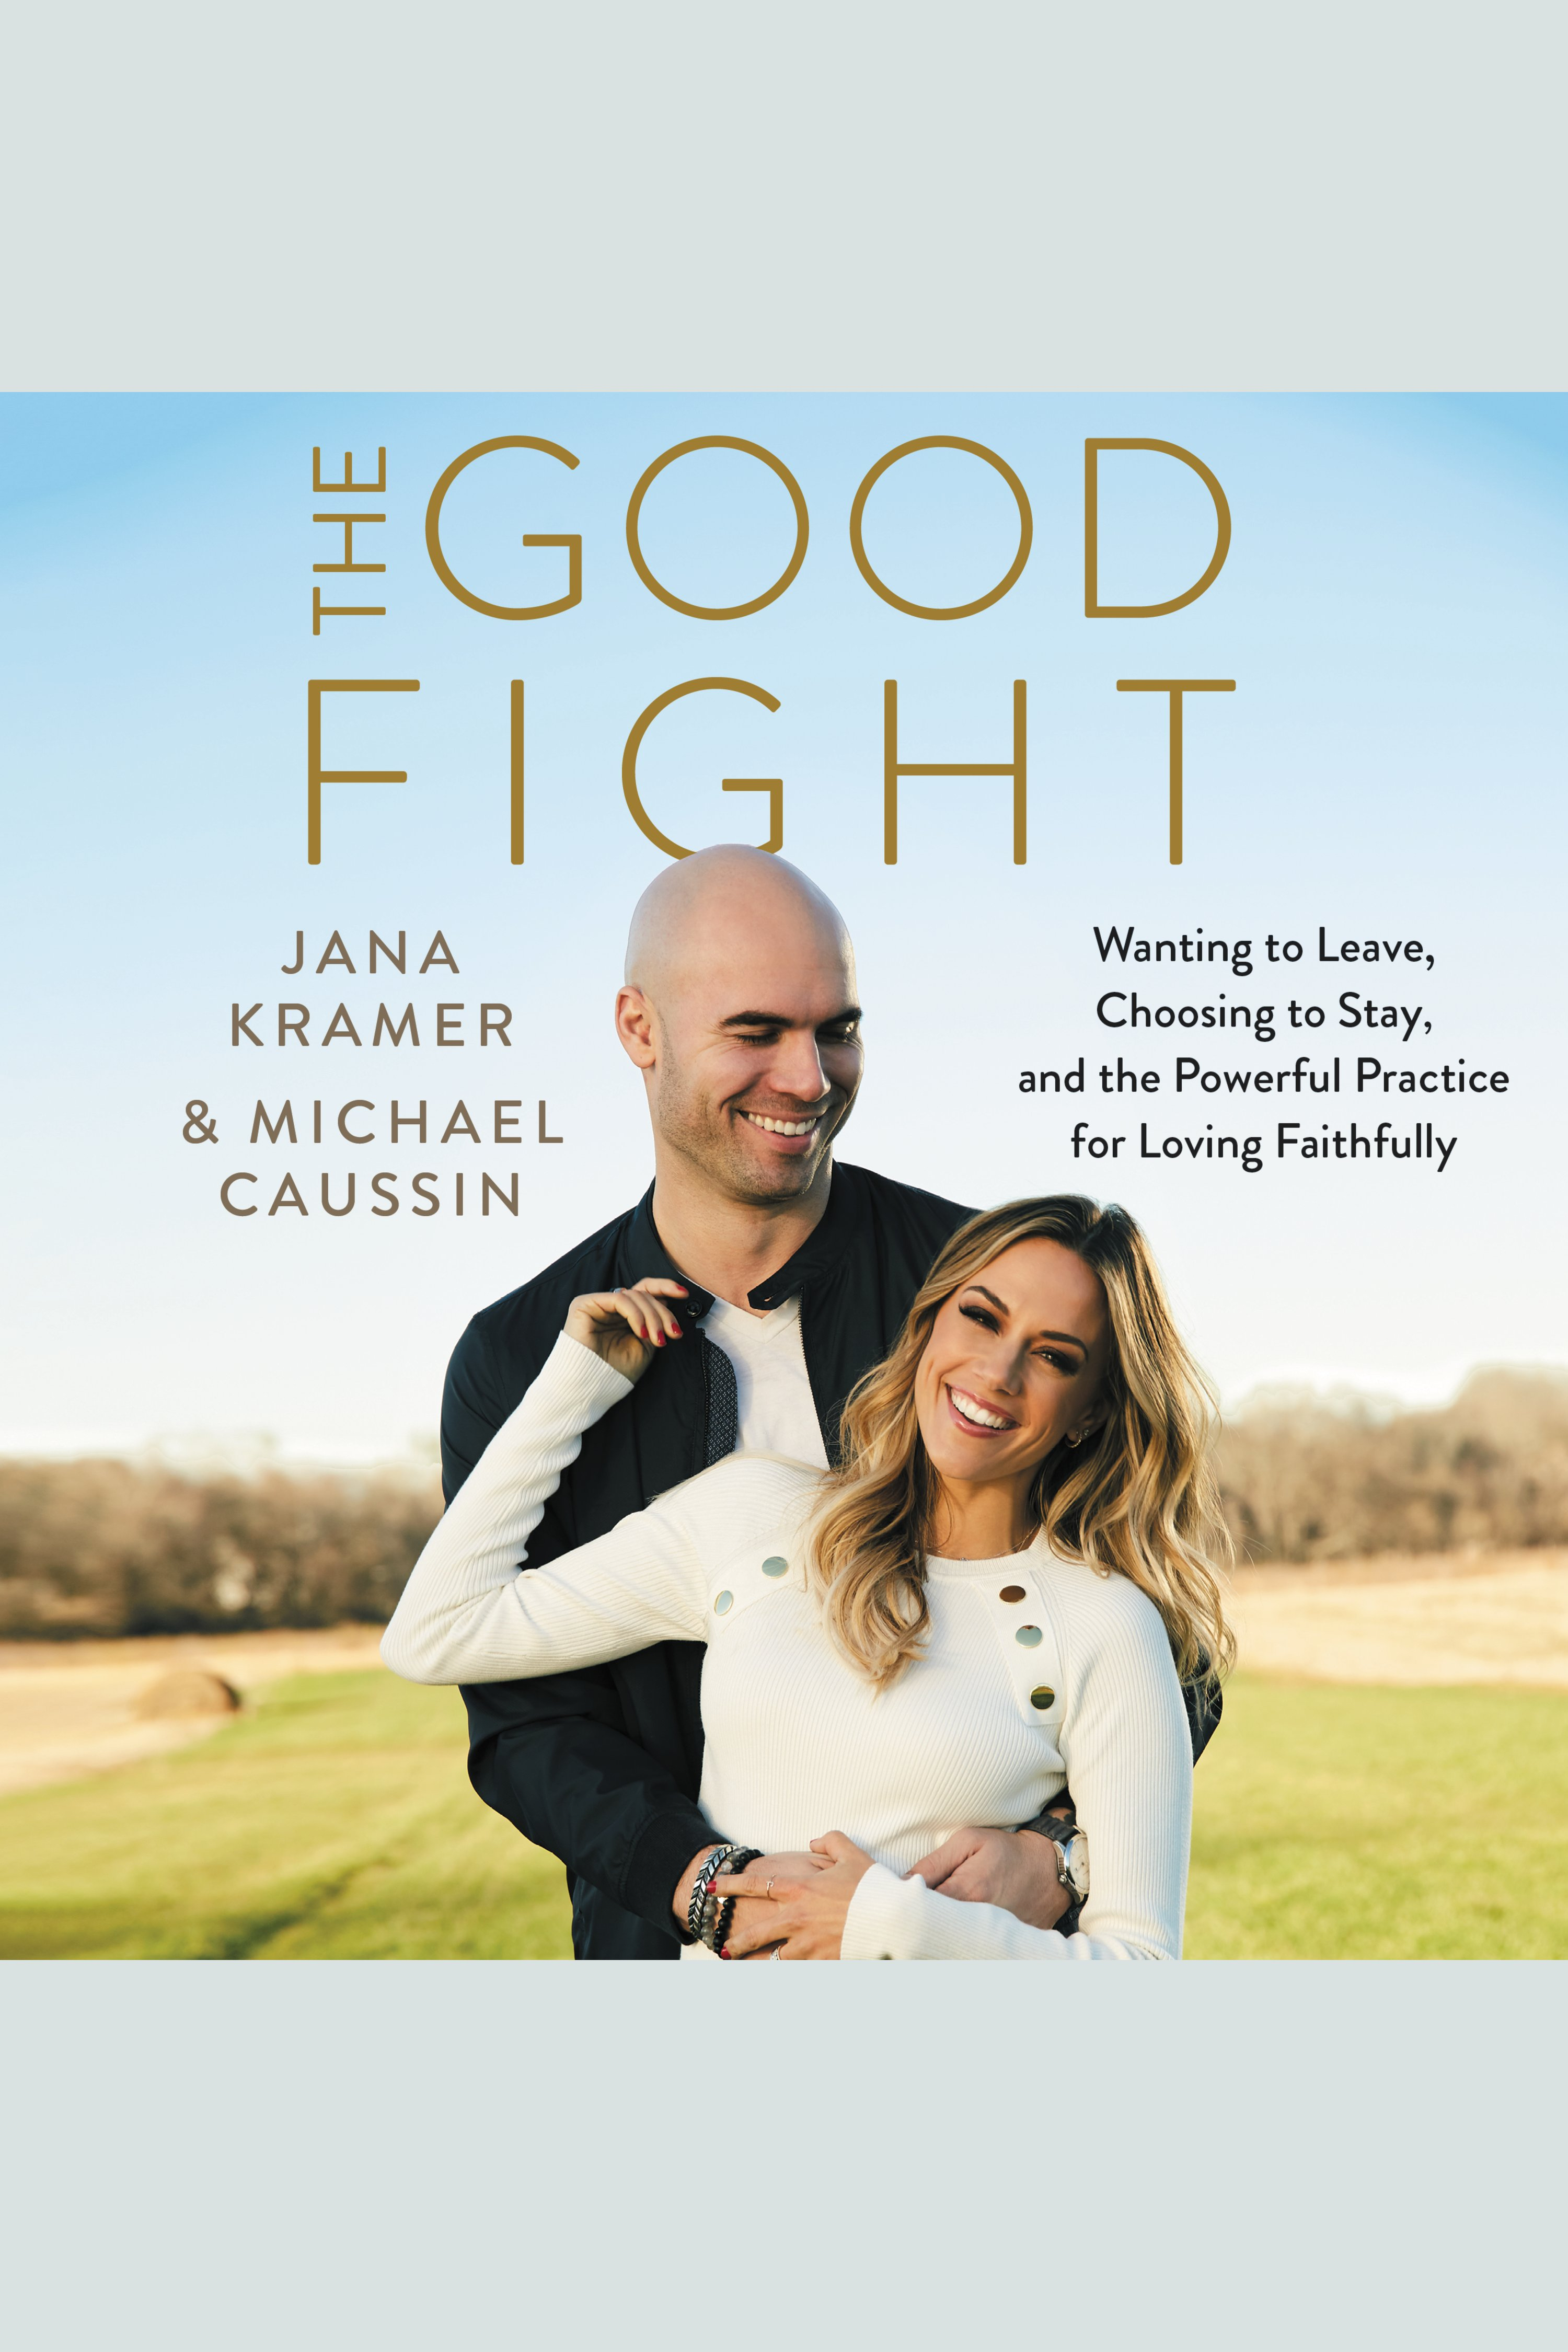 Good Fight, The Wanting to Leave, Choosing to Stay, and the Powerful Practice for Loving Faithfully